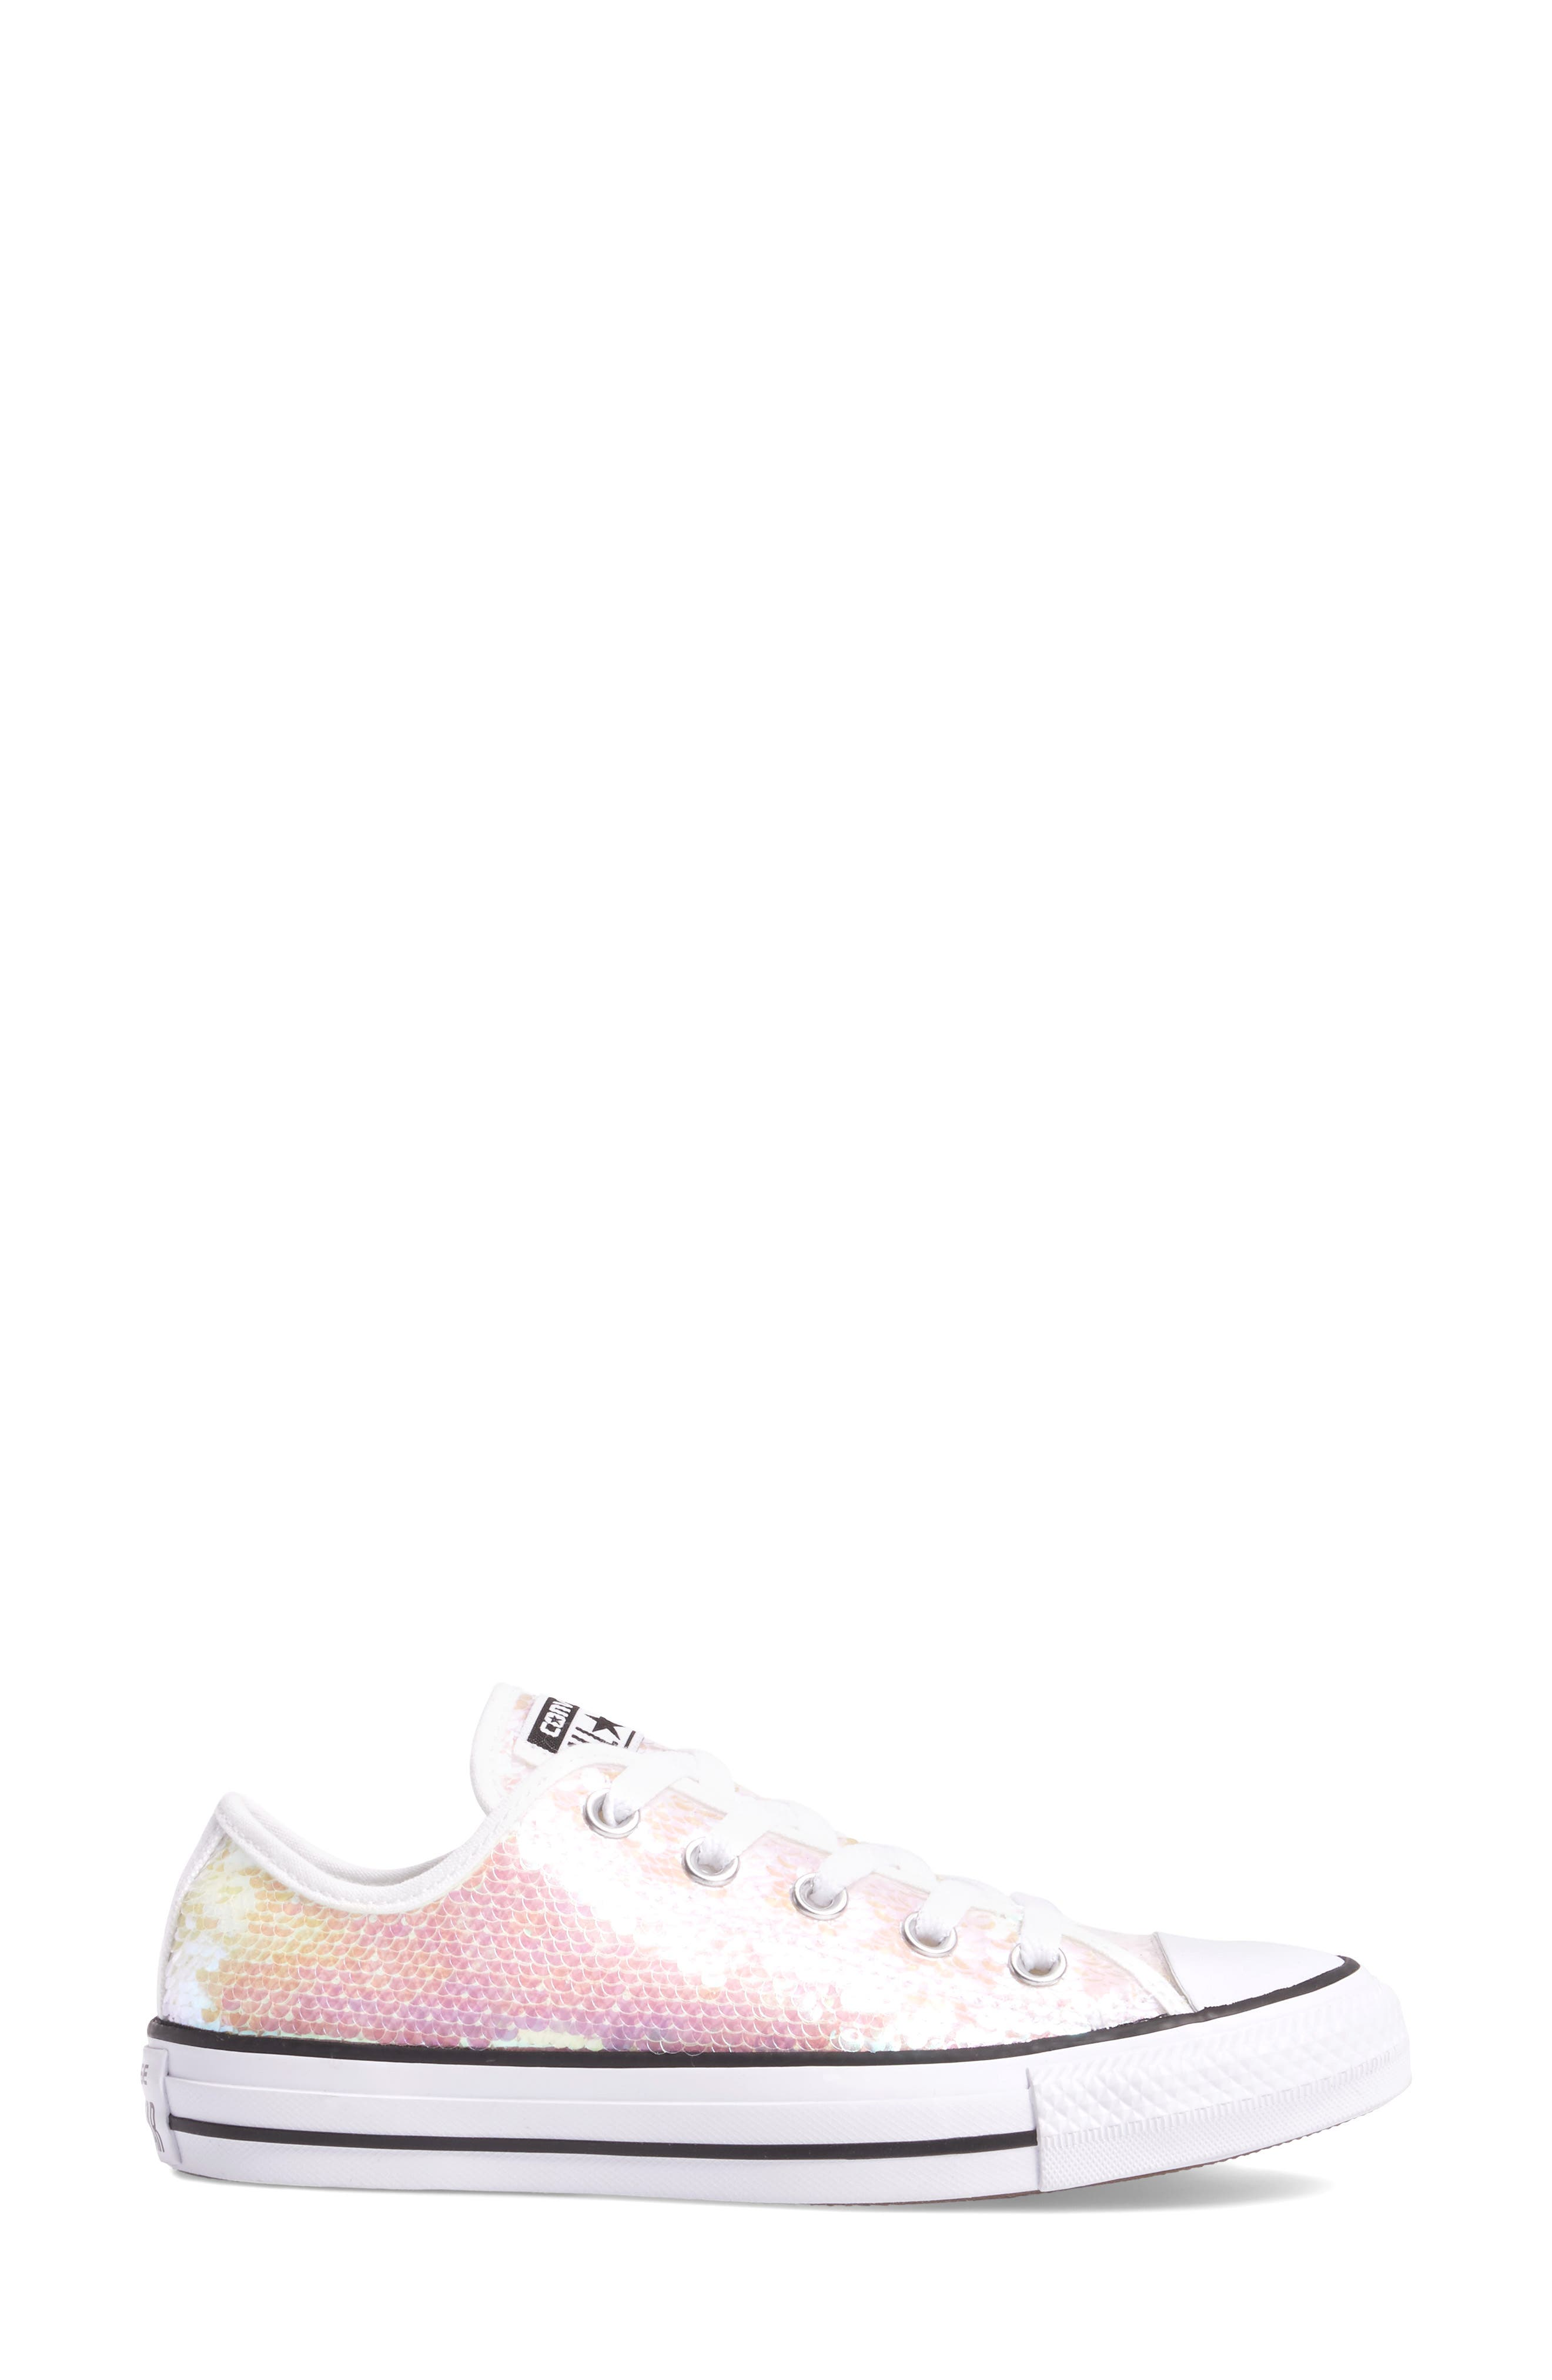 Chuck Taylor<sup>®</sup> All Star<sup>®</sup> Sequin Low Top Sneaker,                             Alternate thumbnail 6, color,